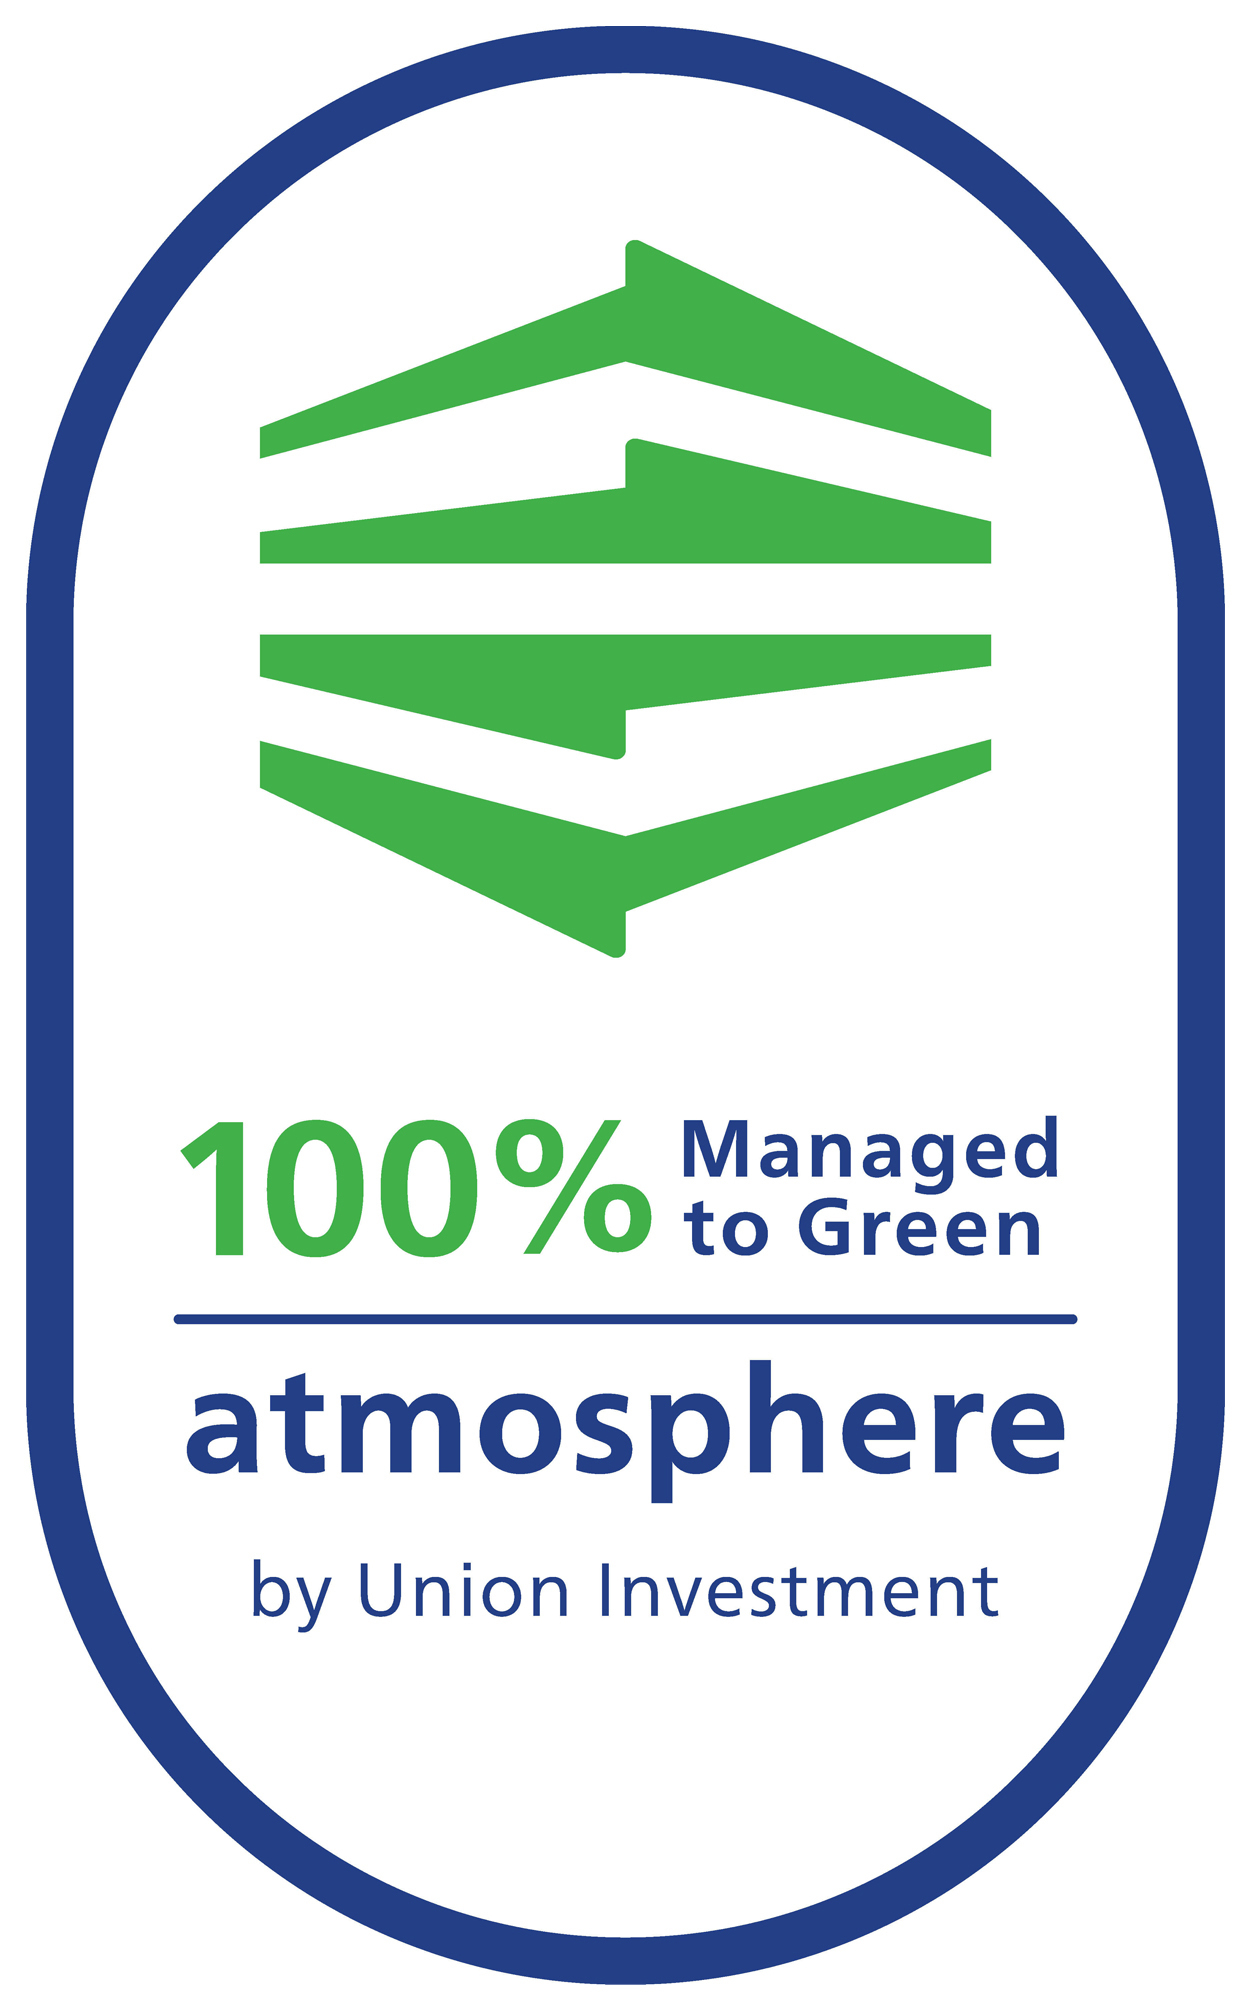 Bildmarke: 100% Managed to Green atmosphere by Union Investment